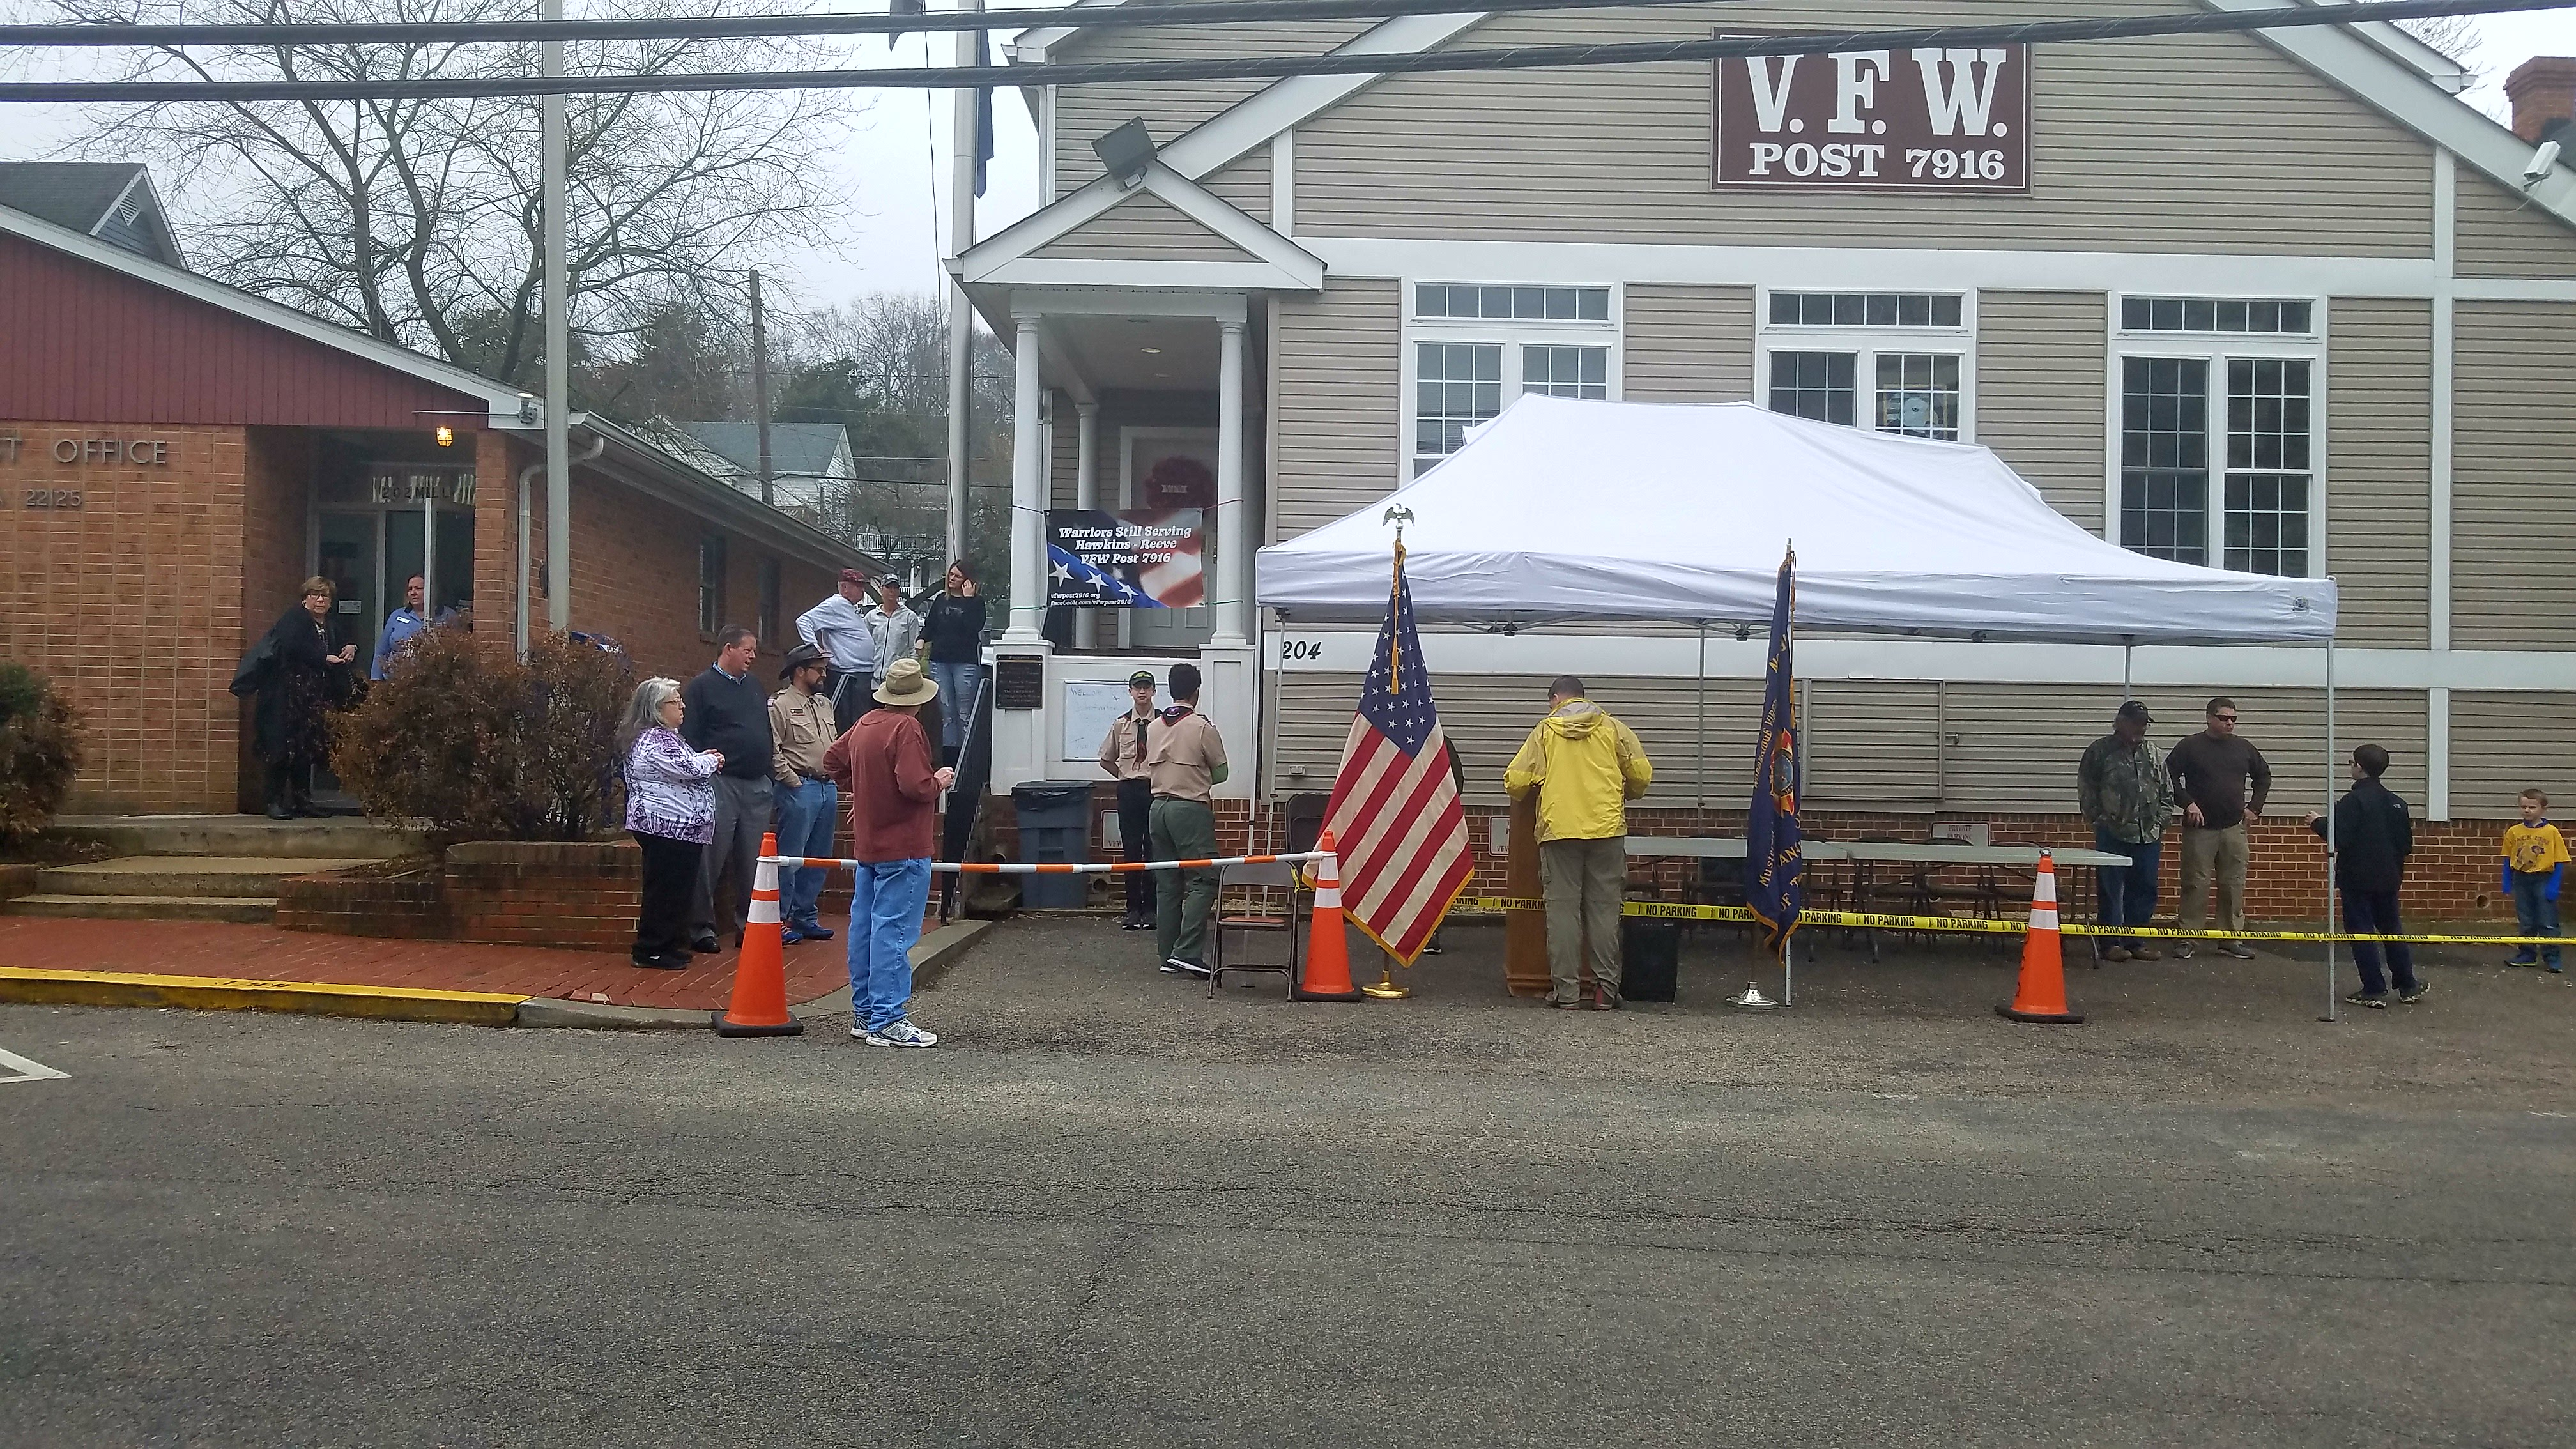 Thank you to VFW7916